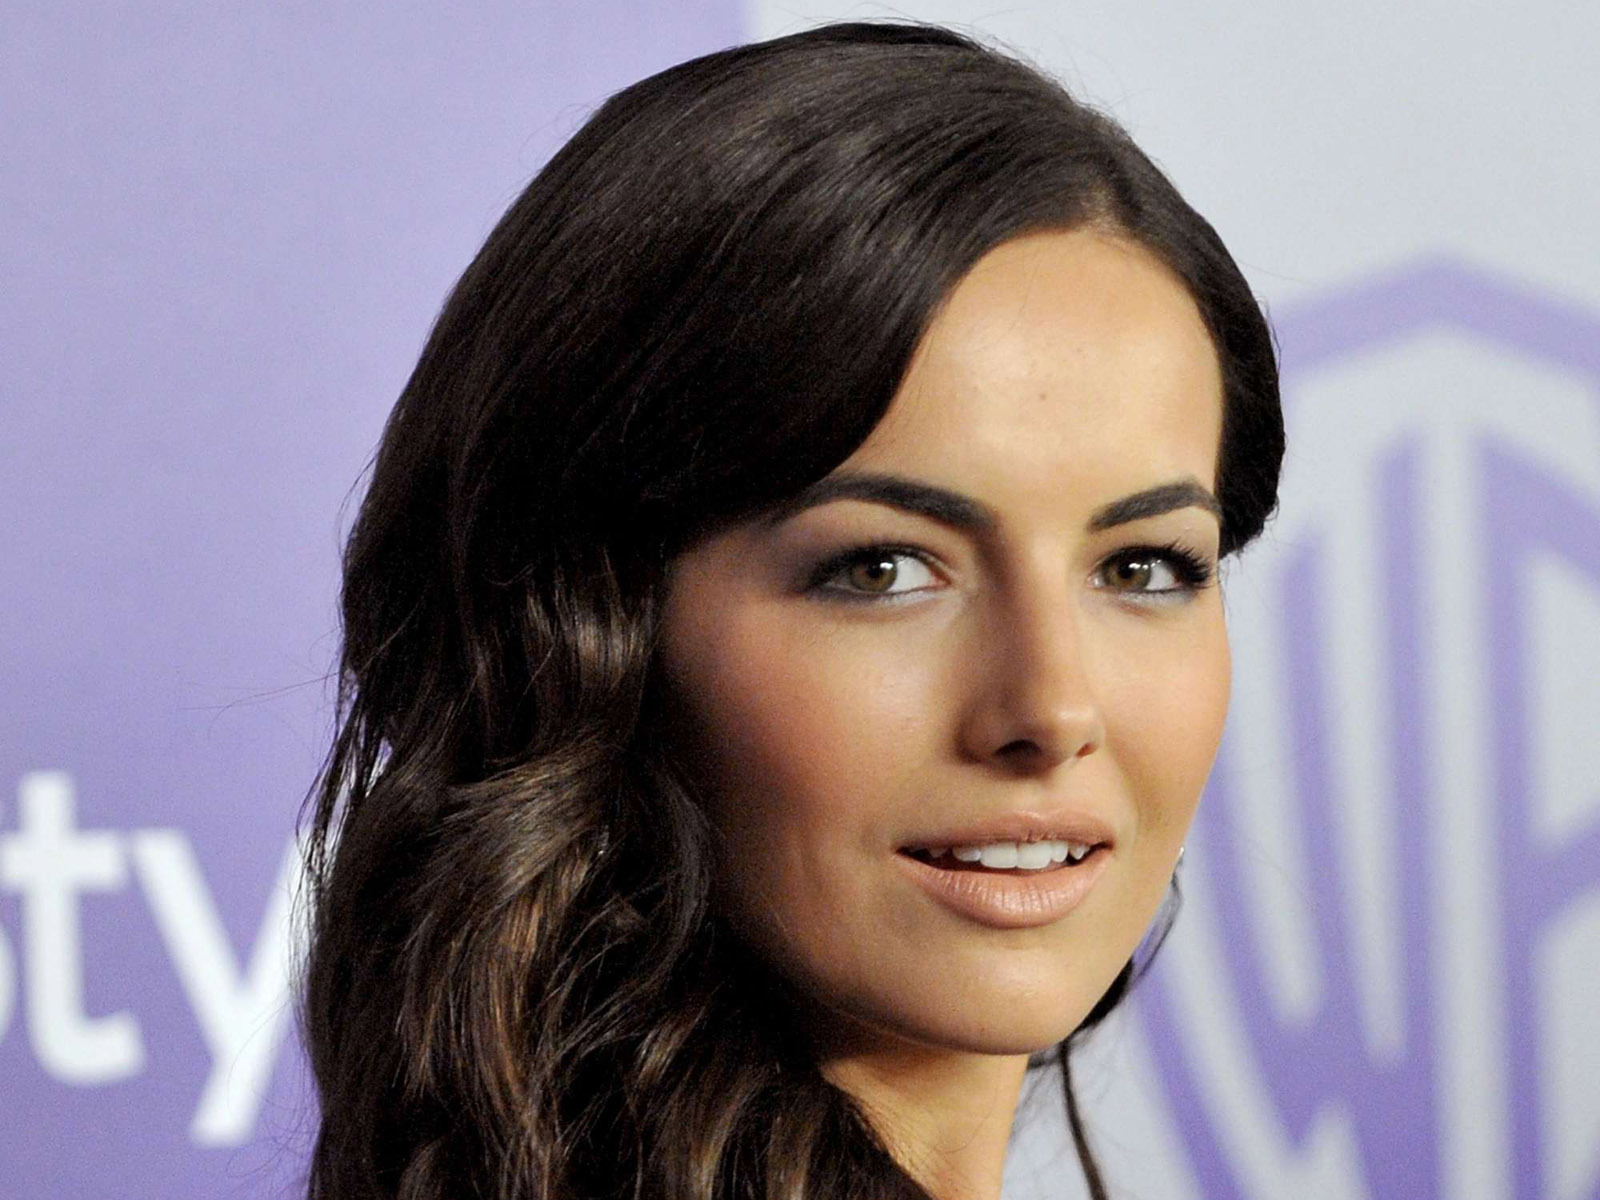 Camilla Belle Download Free Backgrounds HD